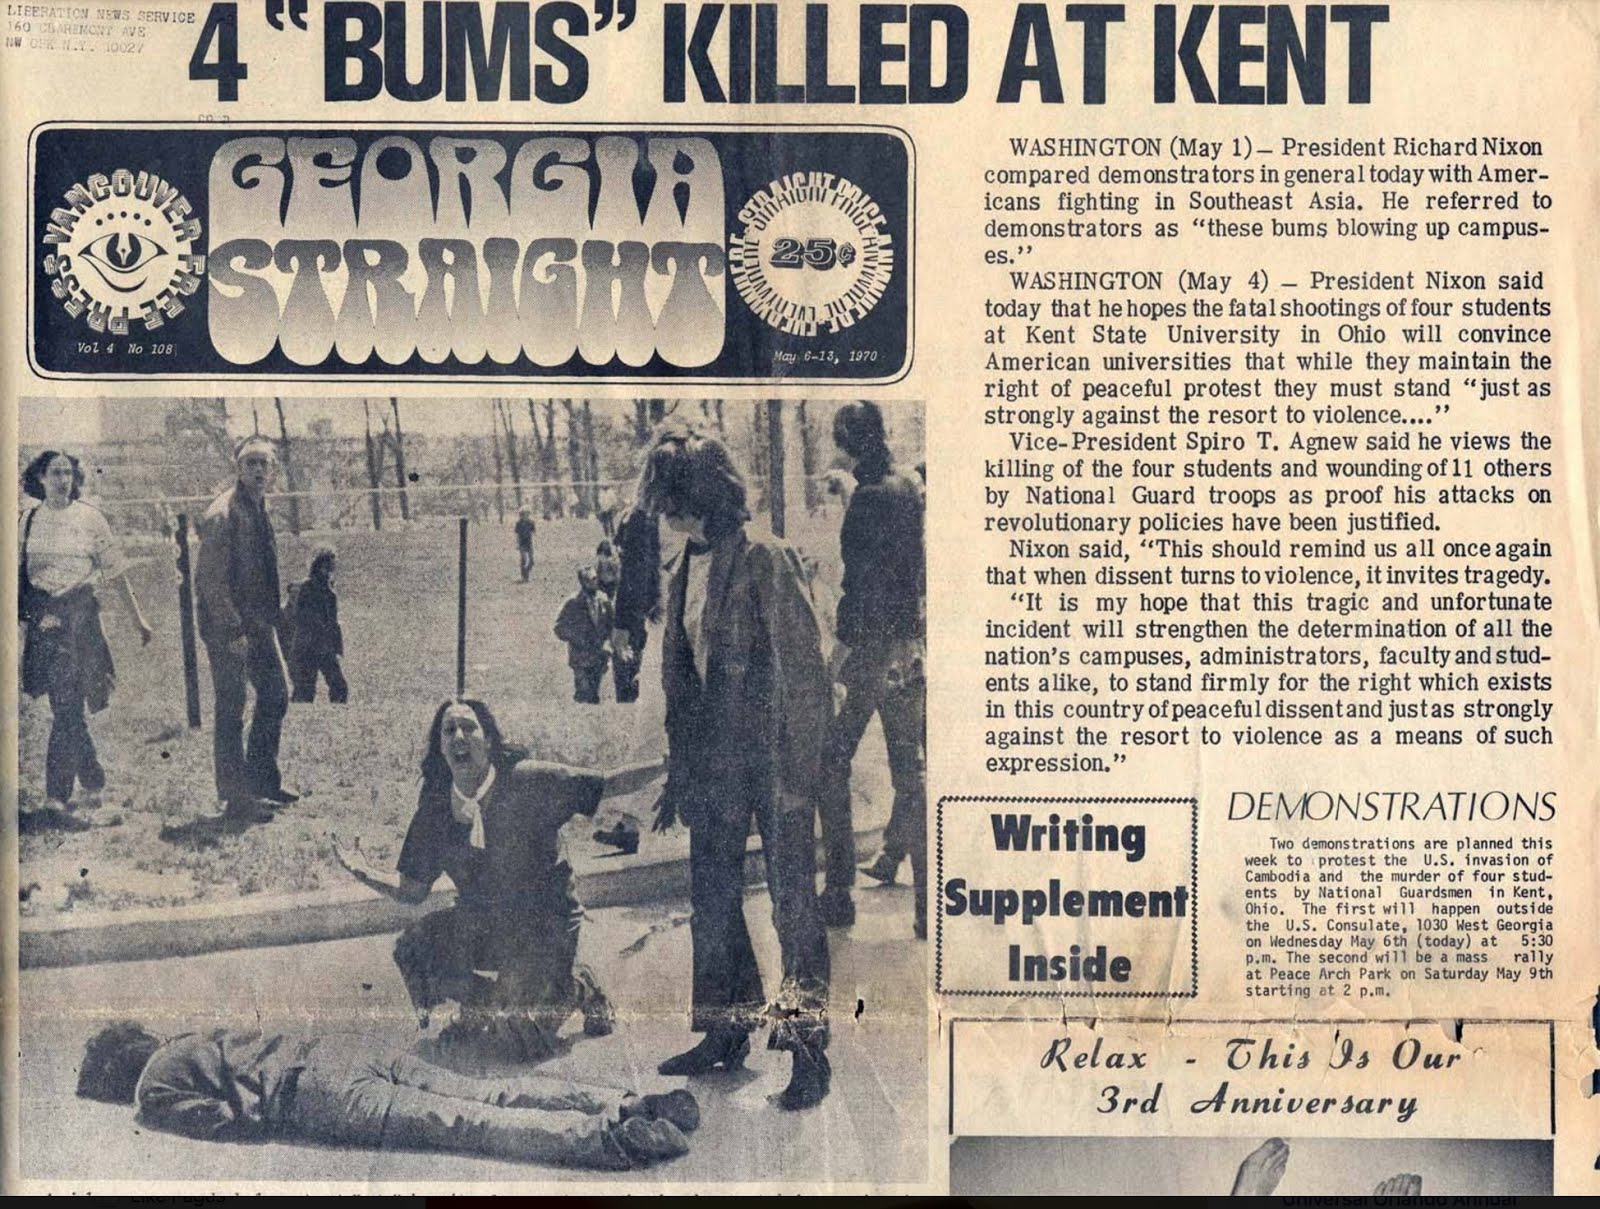 kent state shooting essay Kent state shootings essay  kent state shootings the kent state shootings, also called the kent state massacre, occurred on may 4, 1970 on the campus of kent state university in the city of kent, ohio - kent state shootings essay introduction.